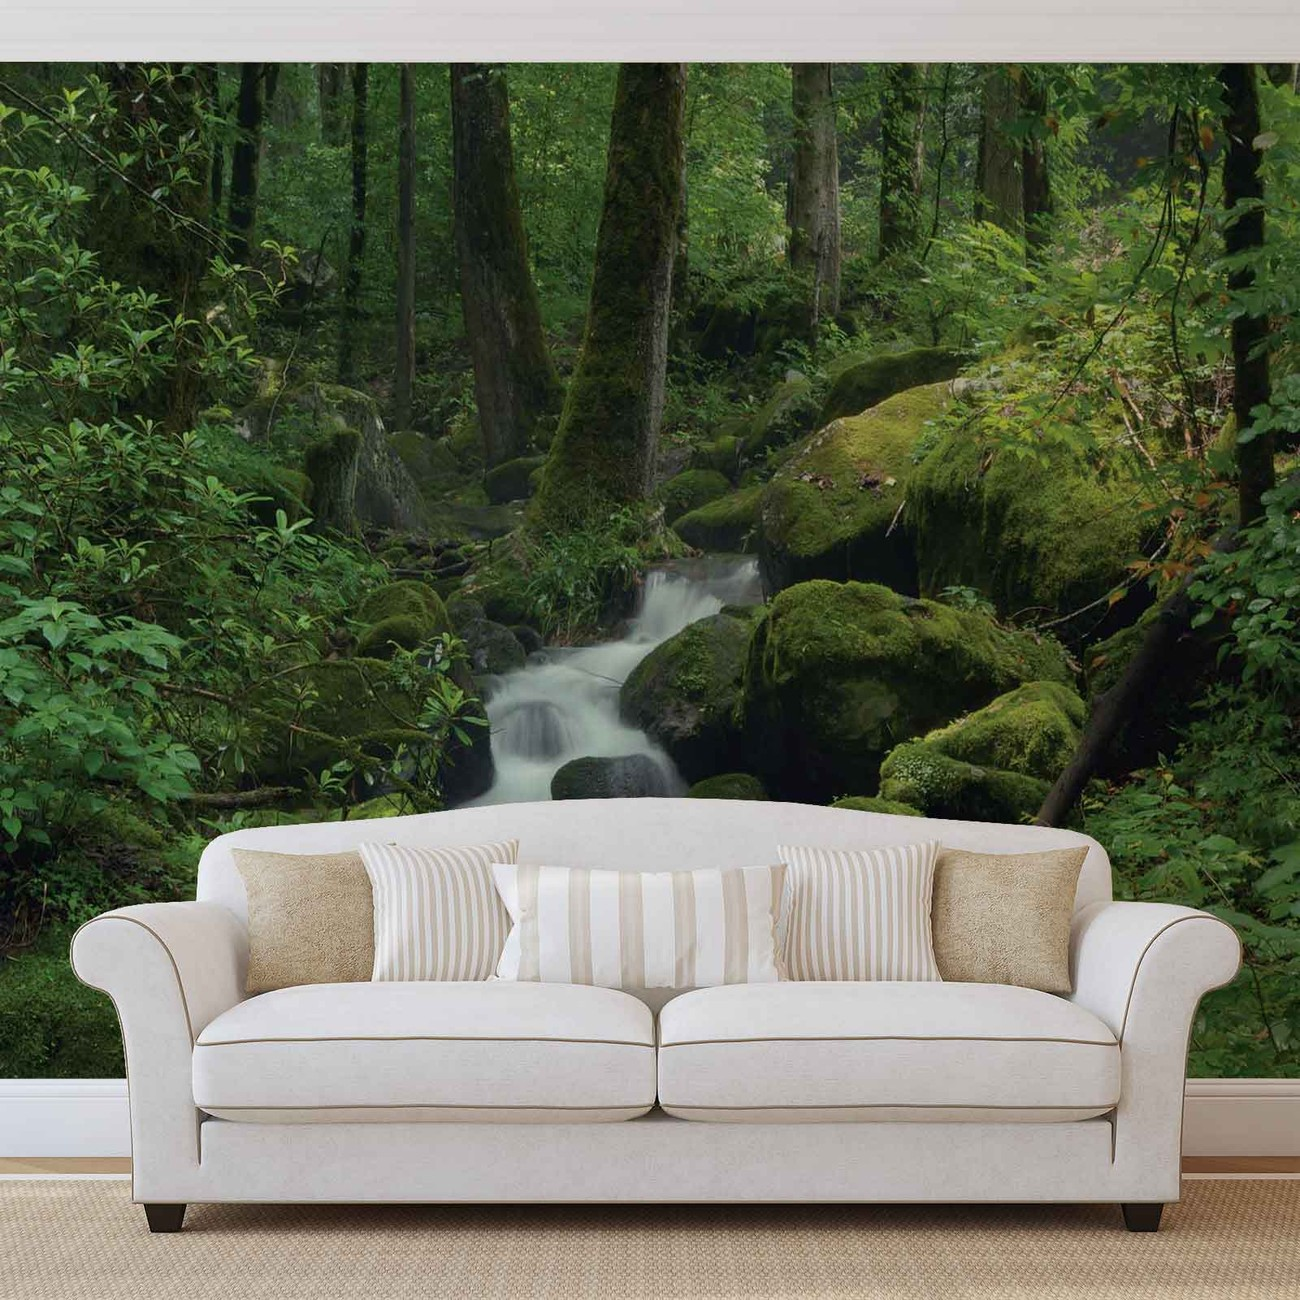 Forest waterfall rocks nature wall paper mural buy at europosters forest waterfall rocks nature wallpaper mural facebook google pinterest price from amipublicfo Choice Image